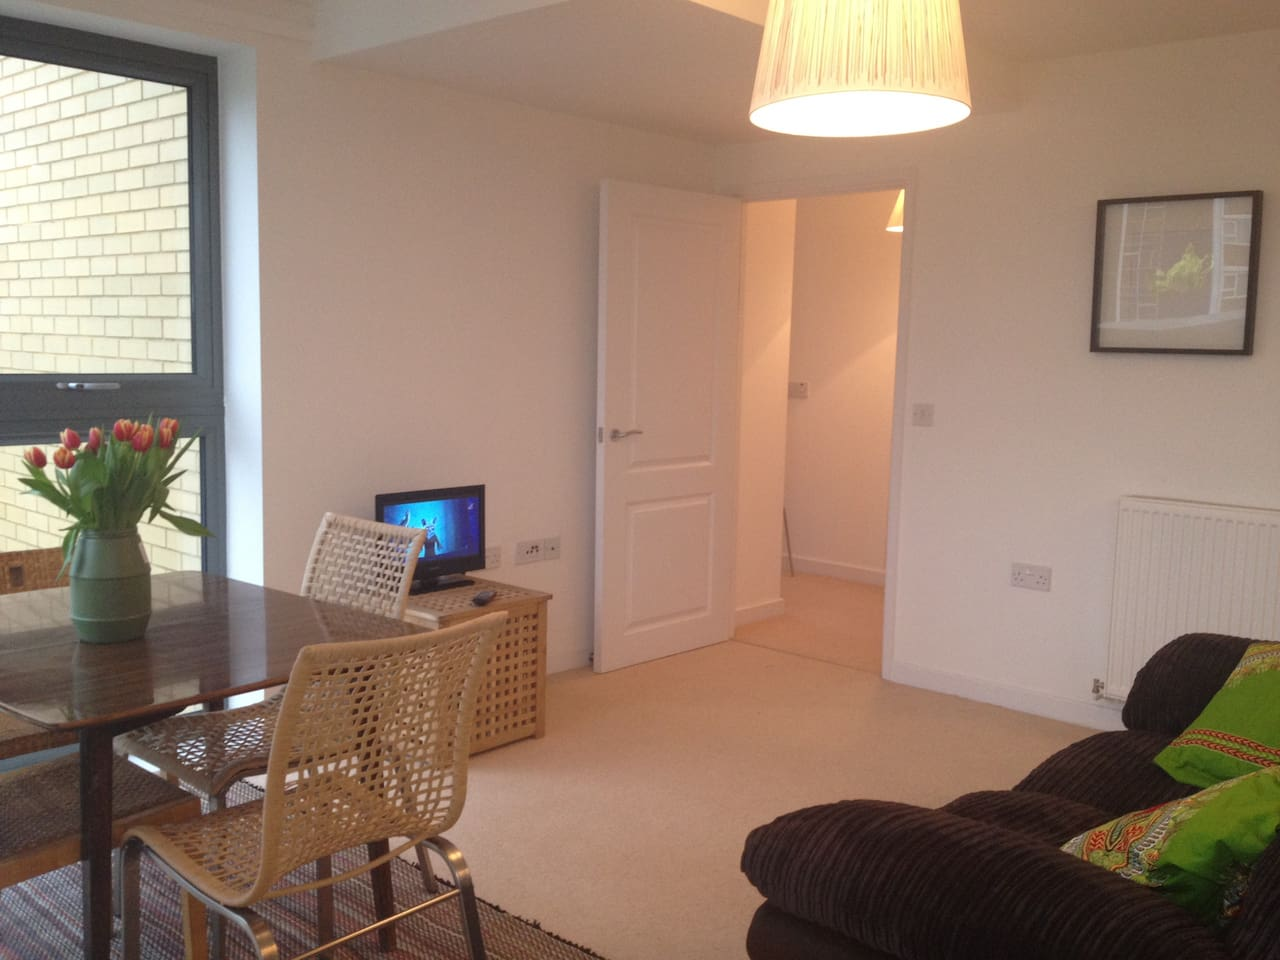 Home 187 kilburn clear glazed internal door - Brand New Flat Near Queen X27 S Park Apartments For Rent In London England United Kingdom